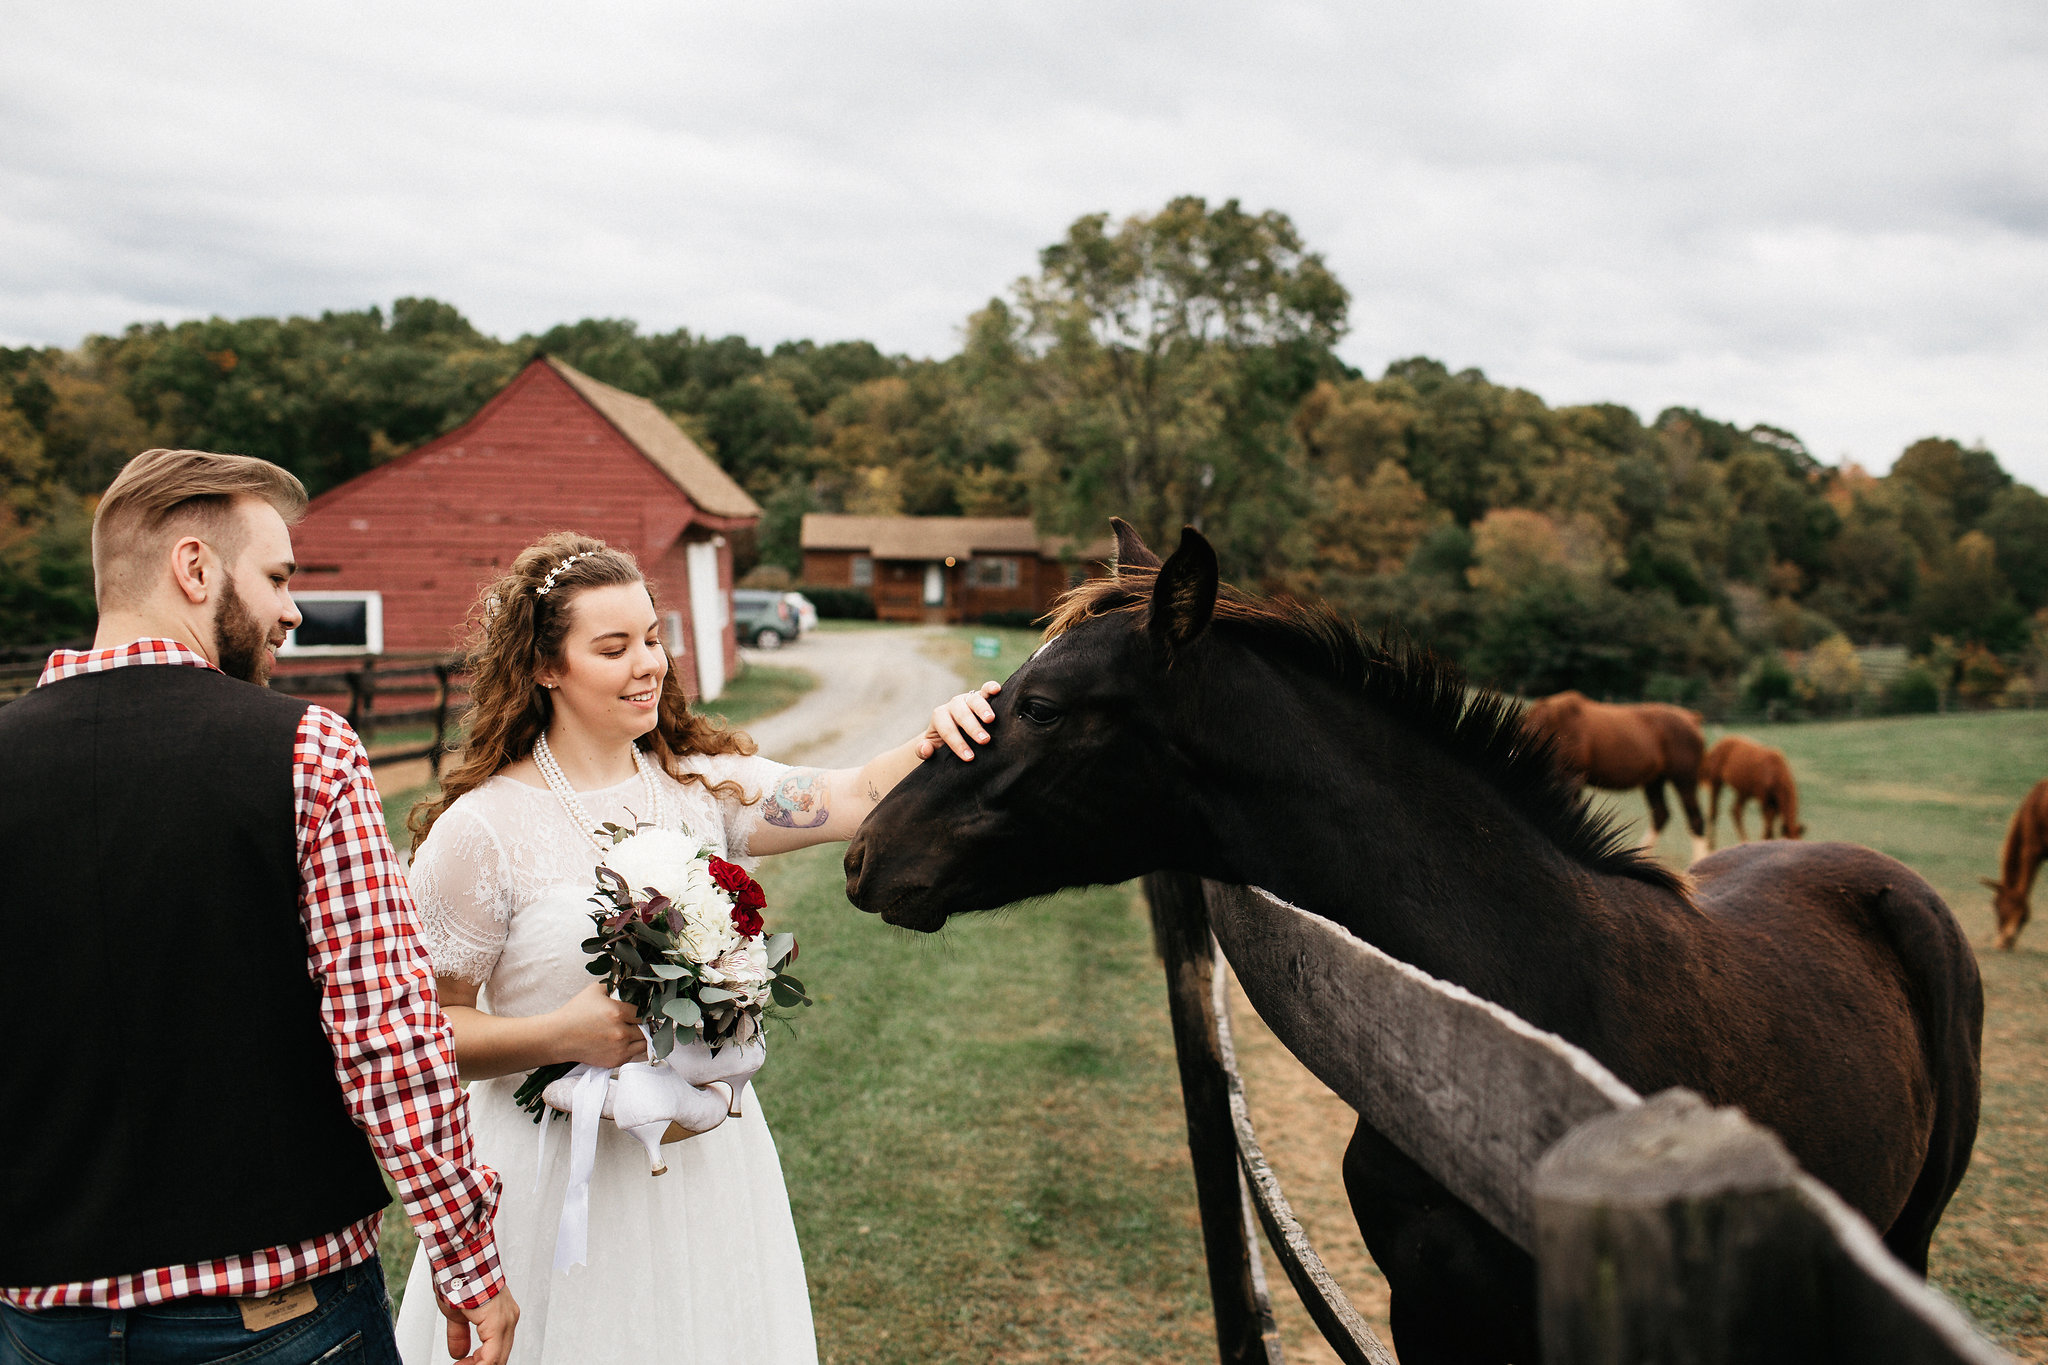 Caitlin&CodyMarried2017-11-03at19.19.40PM101.jpg